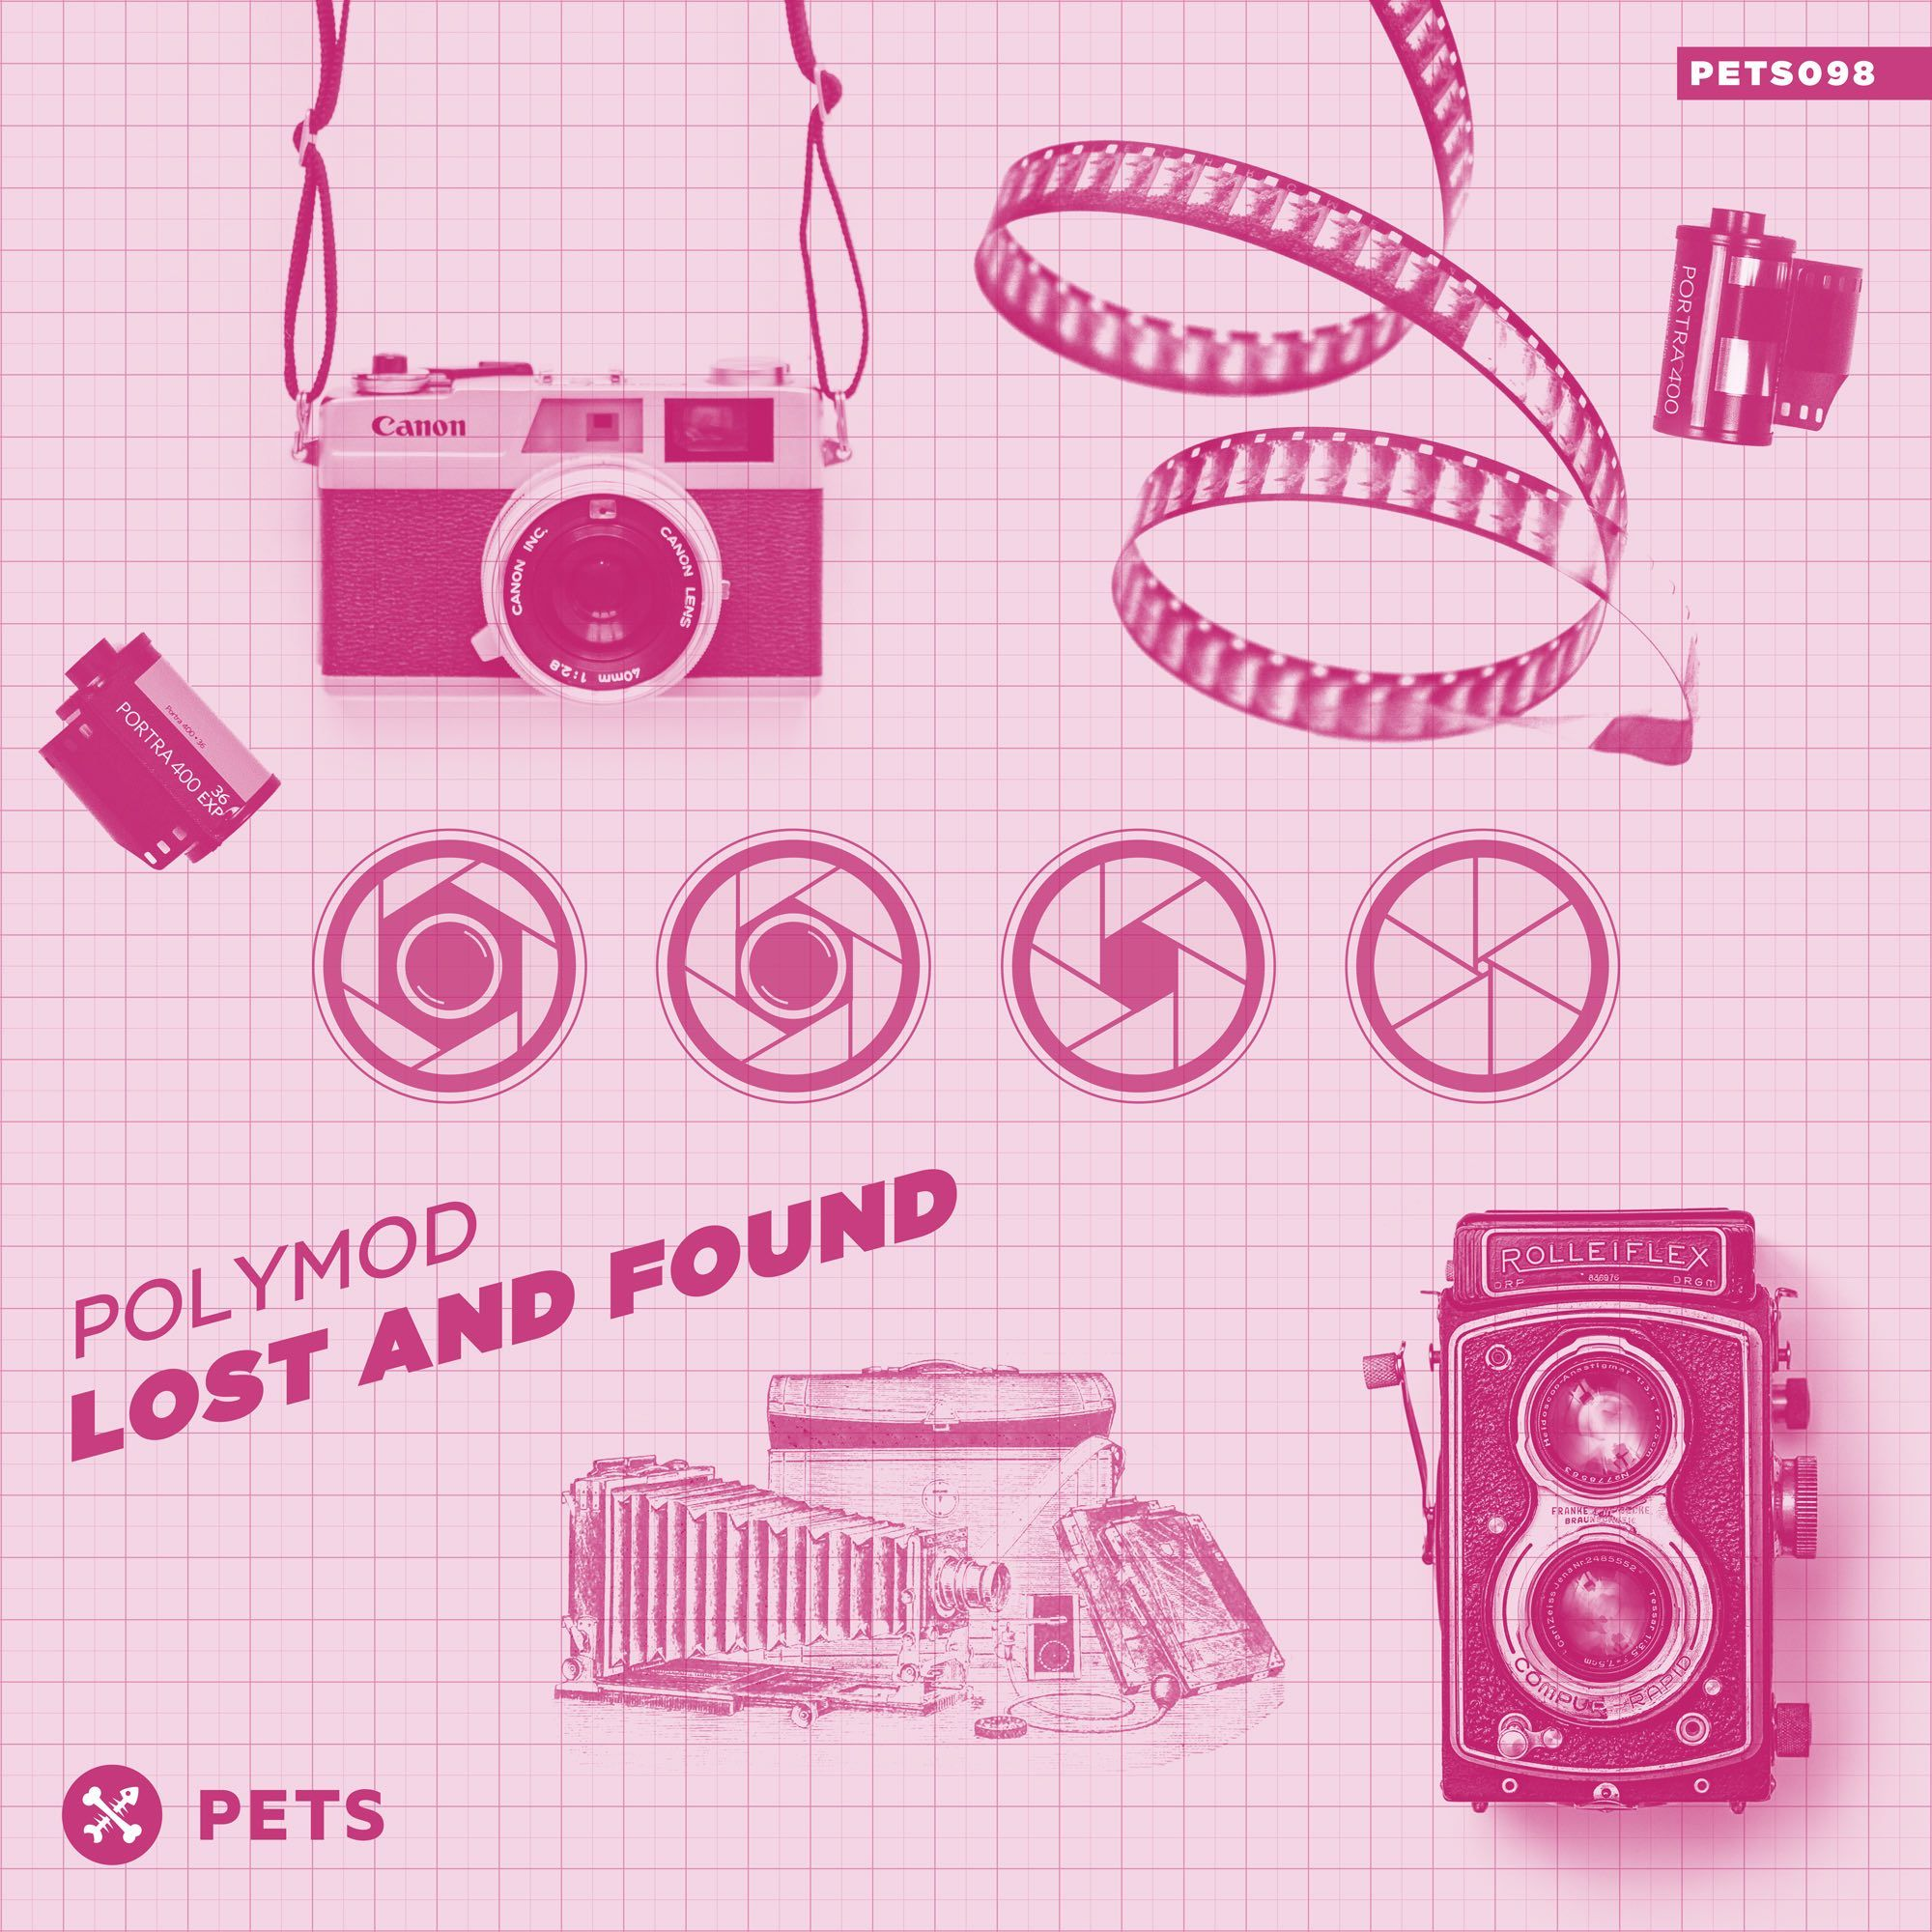 pets098-polymod-lost-and-found_copy.jpg